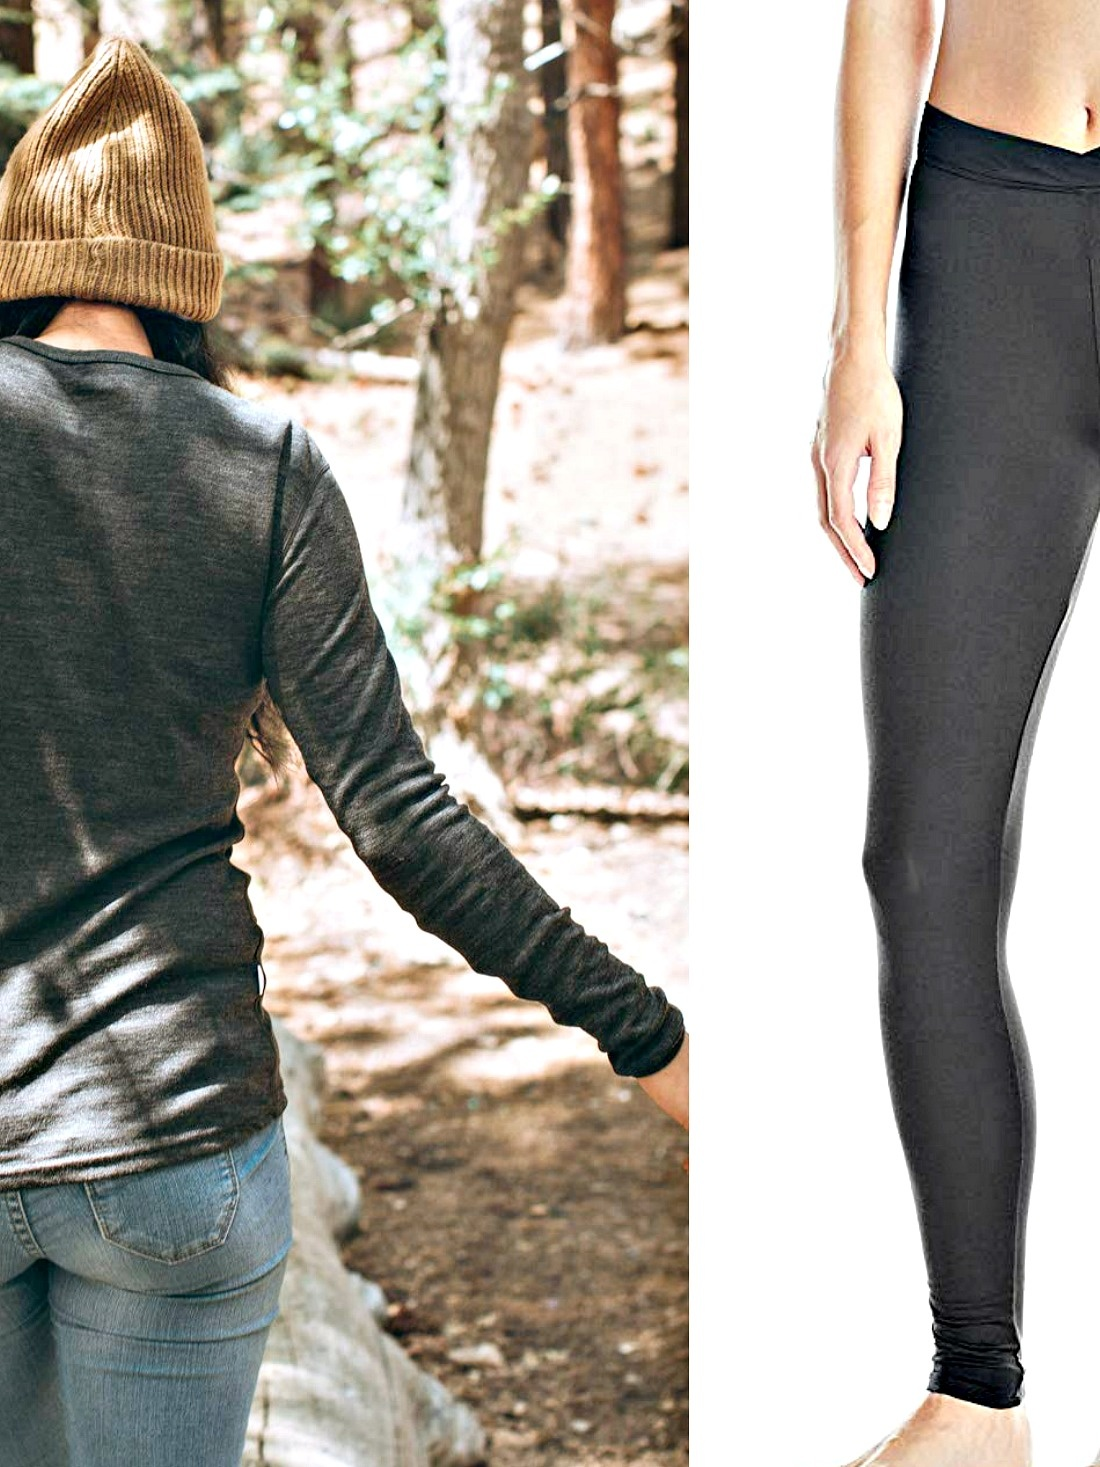 Wondering how to stay stylish withouth looking all layered up? Try using one of these best thermal underwear for women - they will definitely do the trick!